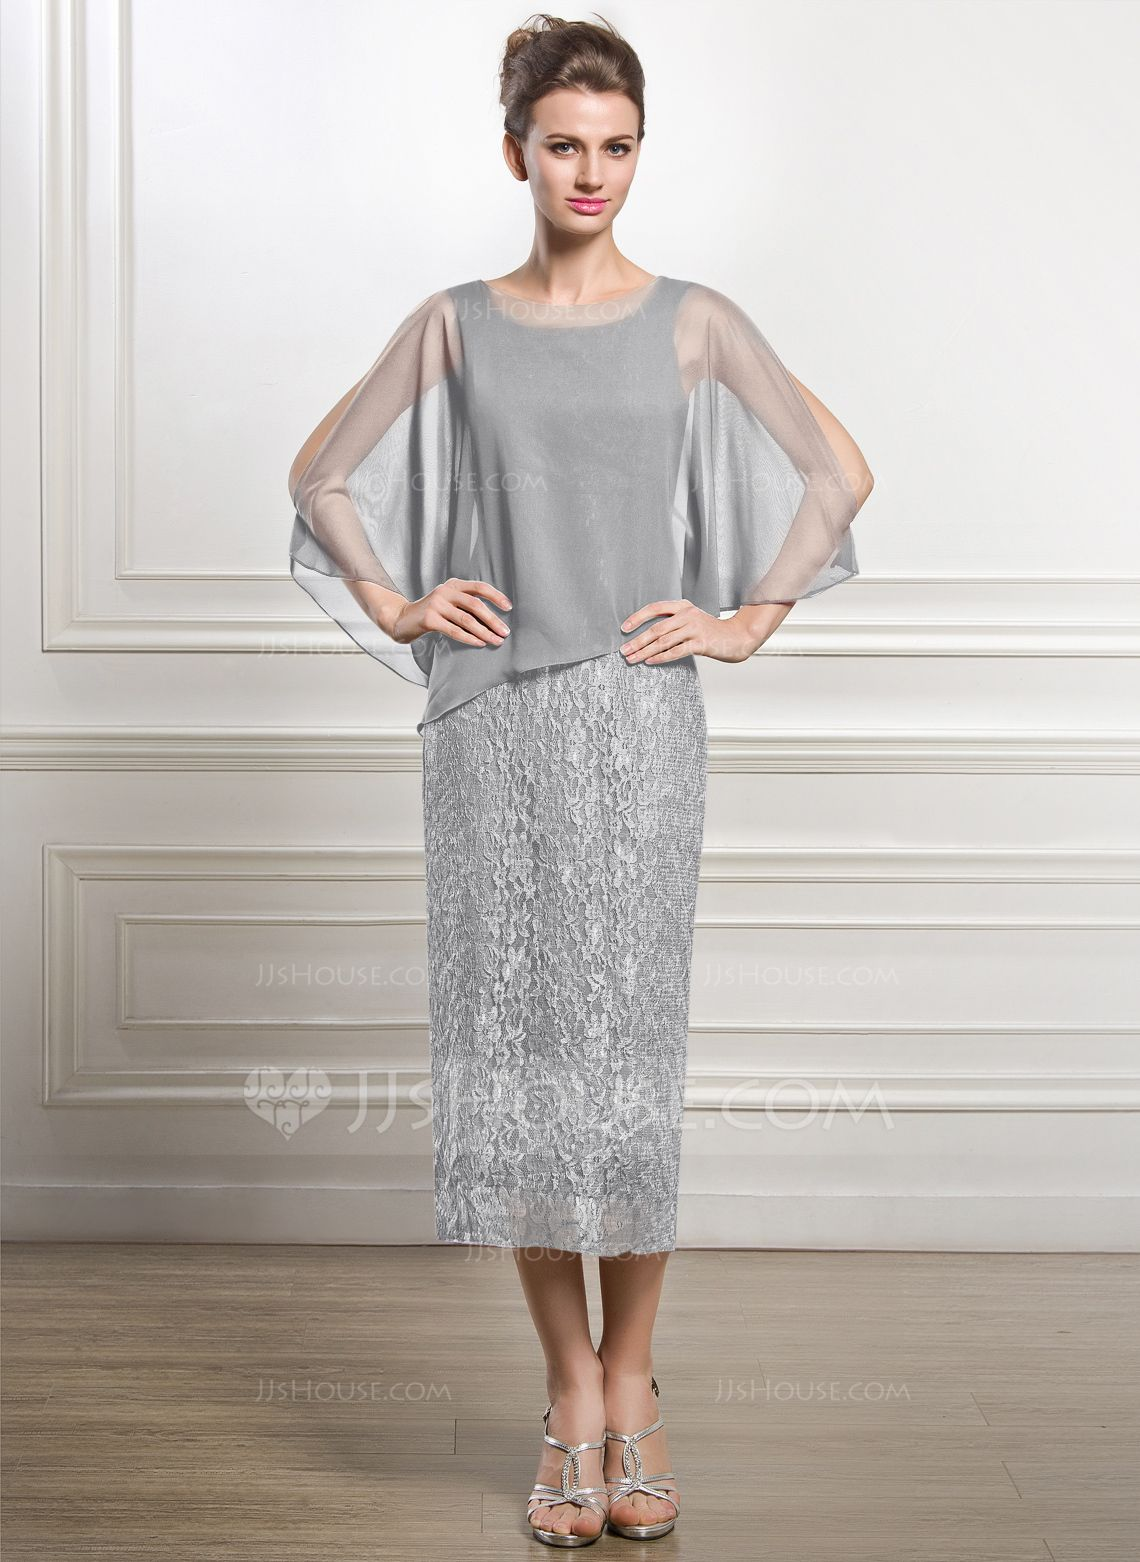 Mother of the groom dresses for outdoor wedding  SheathColumn Scoop Neck TeaLength Chiffon Lace Mother of the Bride